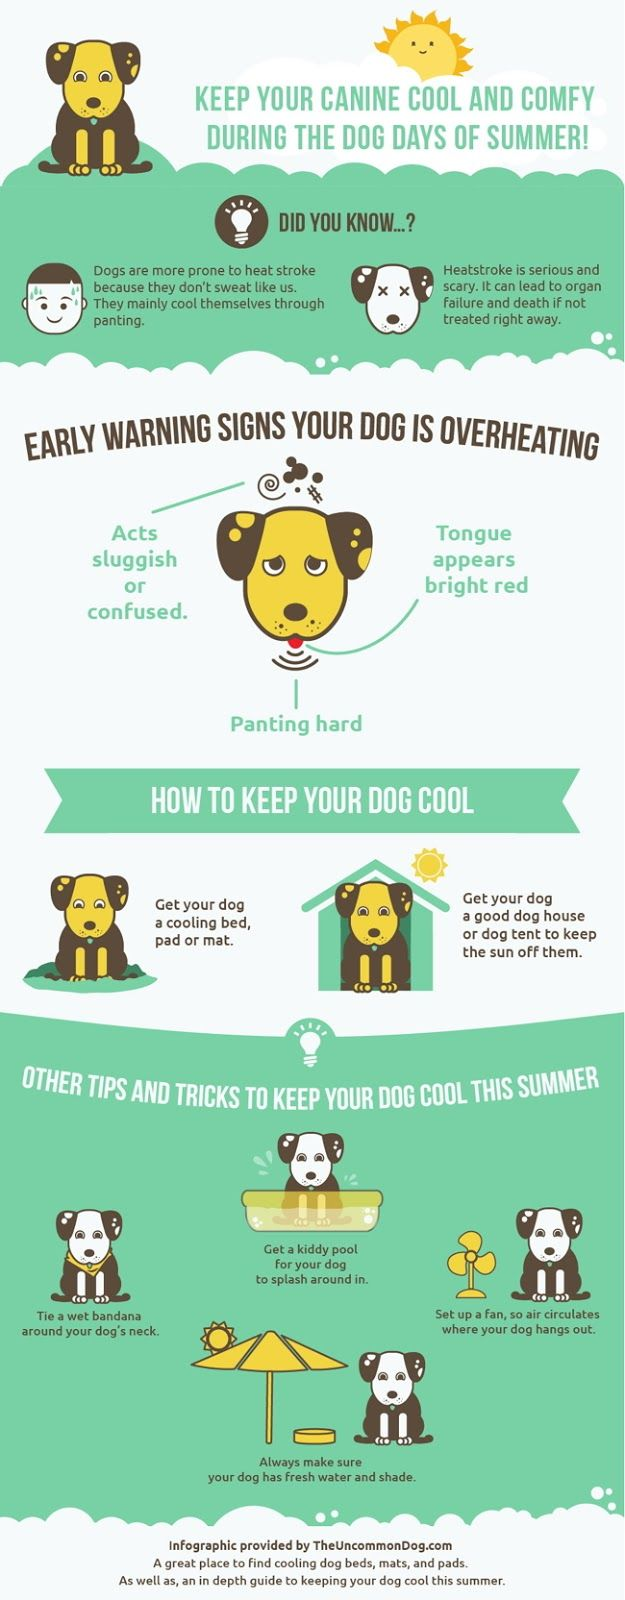 This #infographic provides tips on how to keep your #dog cool this #summer.